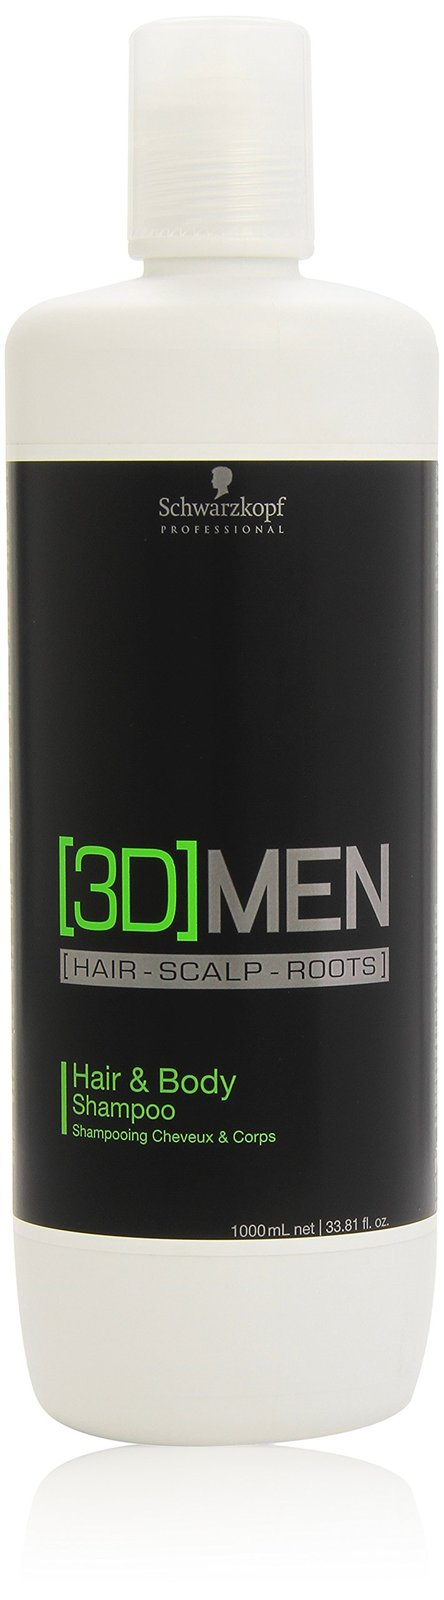 Schwarzkopf [3D]Men Hair & Body Shampoo 1000ml